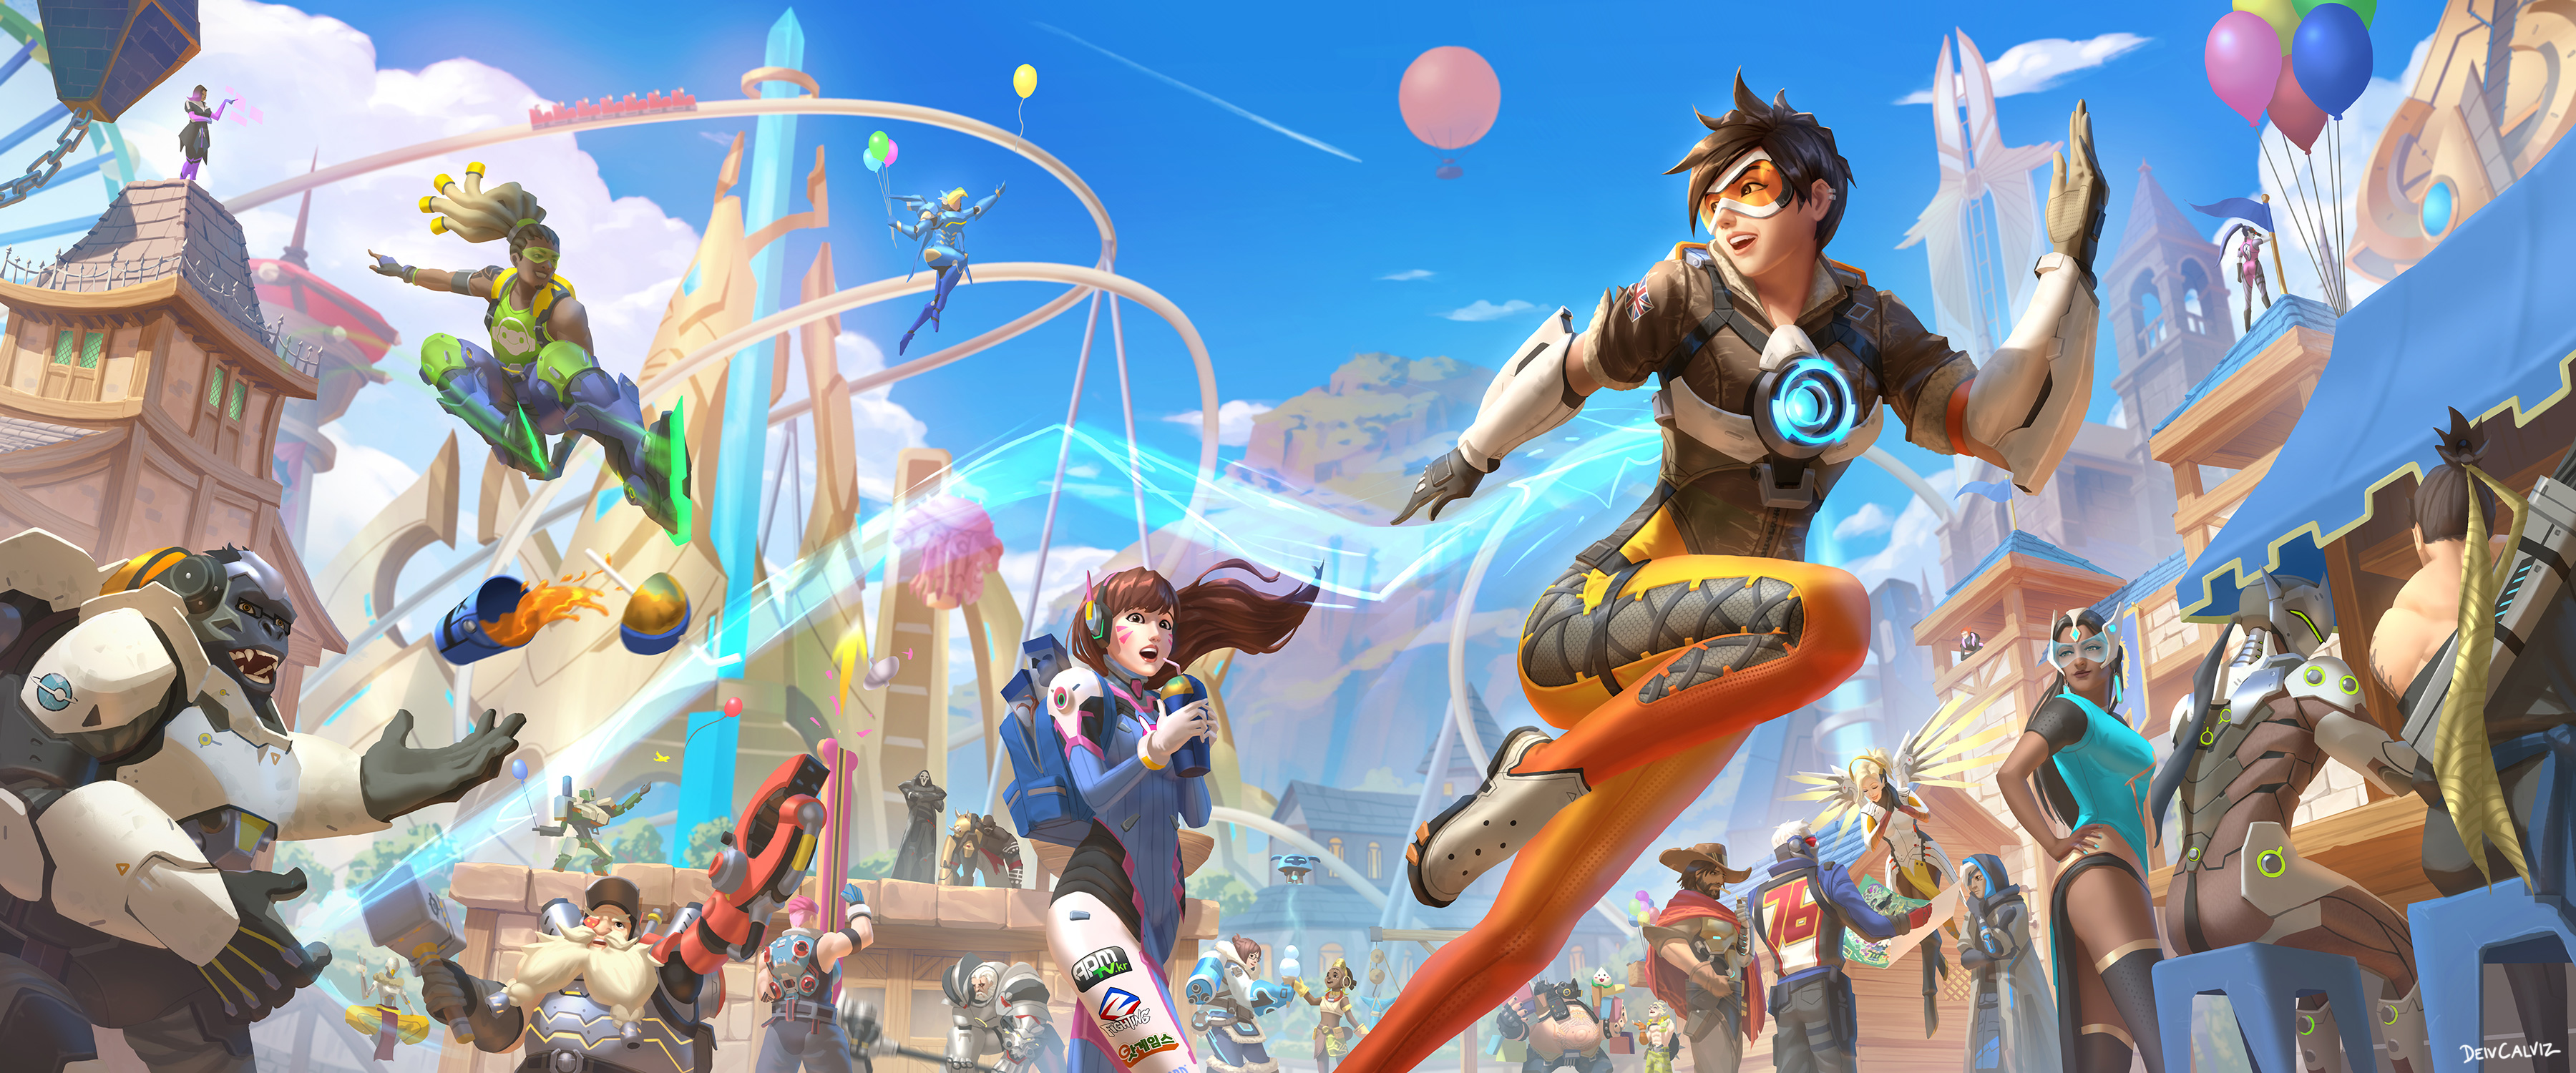 Winners Overwatch Latest Map Blizzard World Drawing Contest